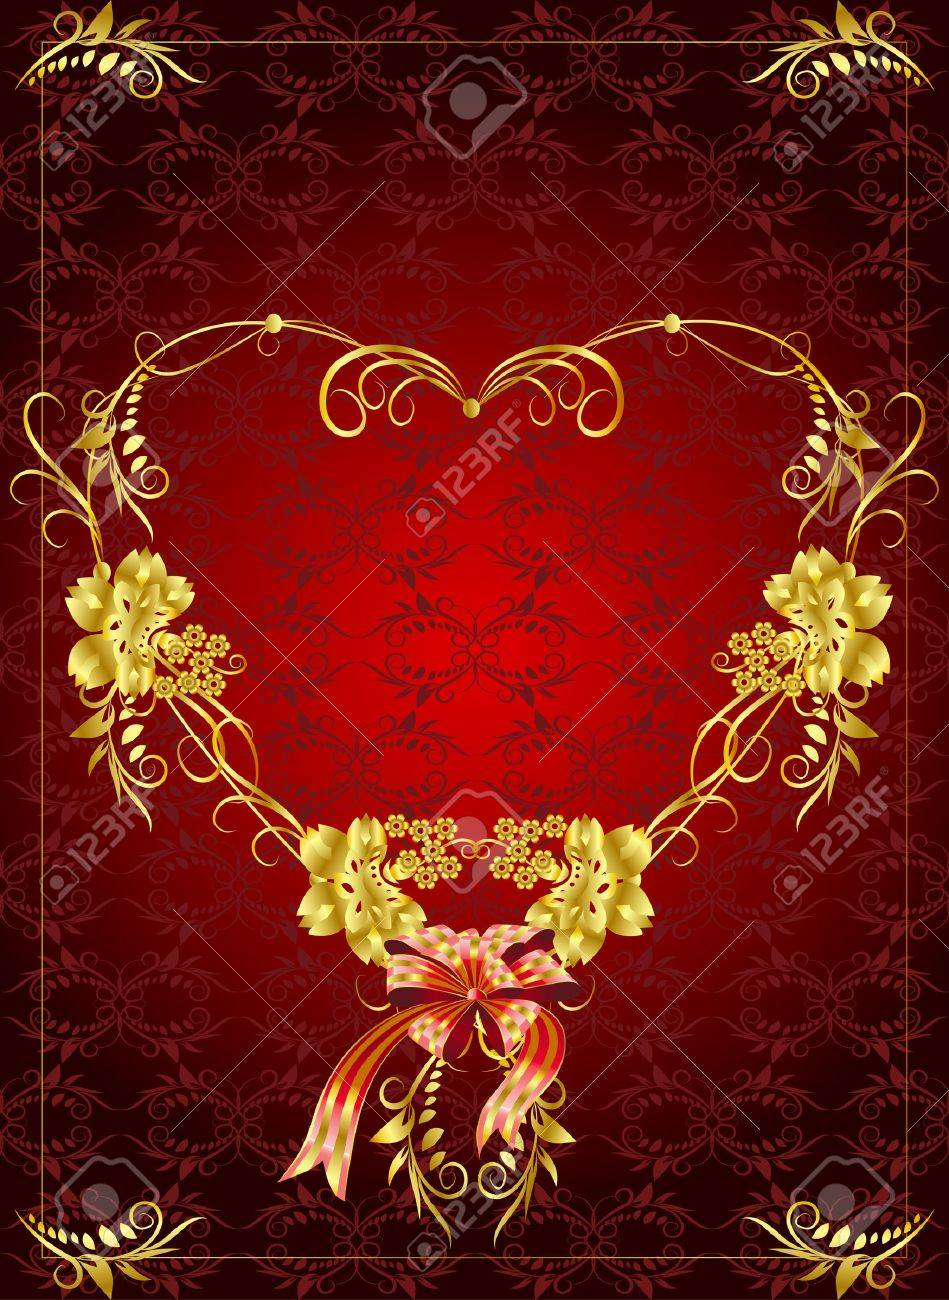 Celebratory background - a framework in the form of a heart of gold with vegetative elements on a red background Stock Vector - 8491421